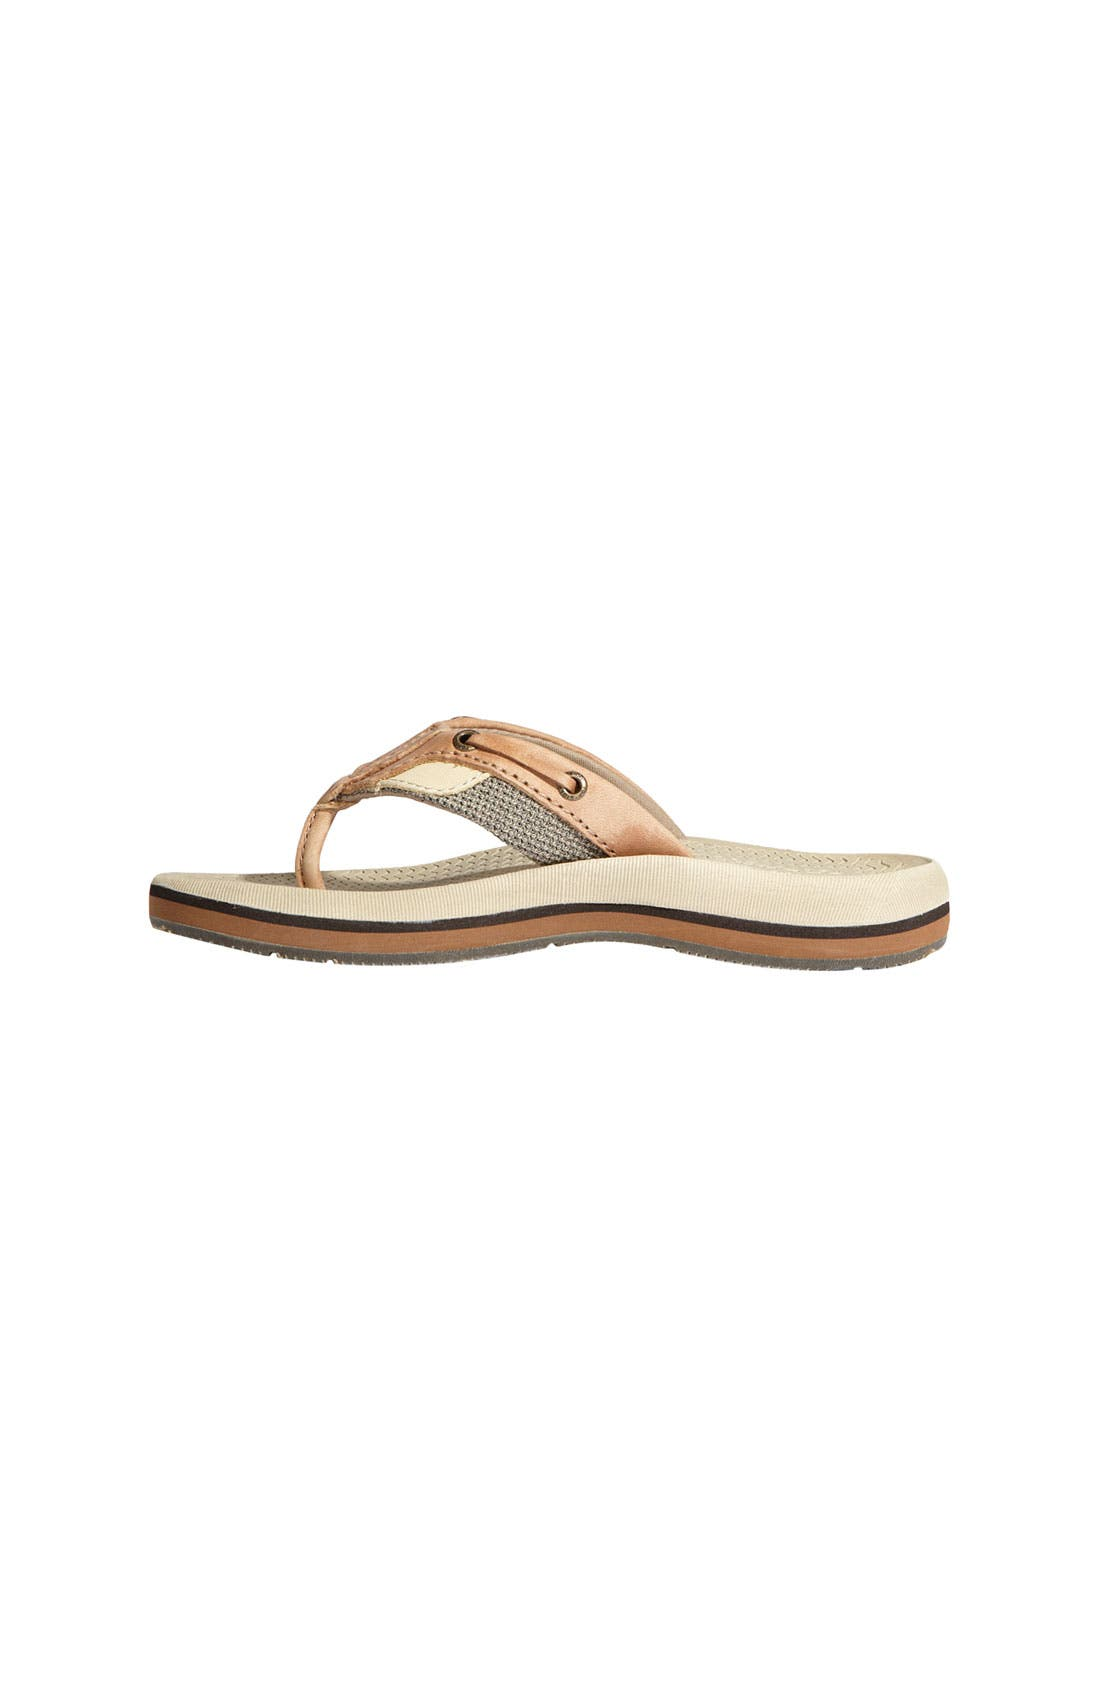 Alternate Image 2  - Sperry Top-Sider® Kids 'Bluefish' Thong Sandal (Little Kid & Big Kid)